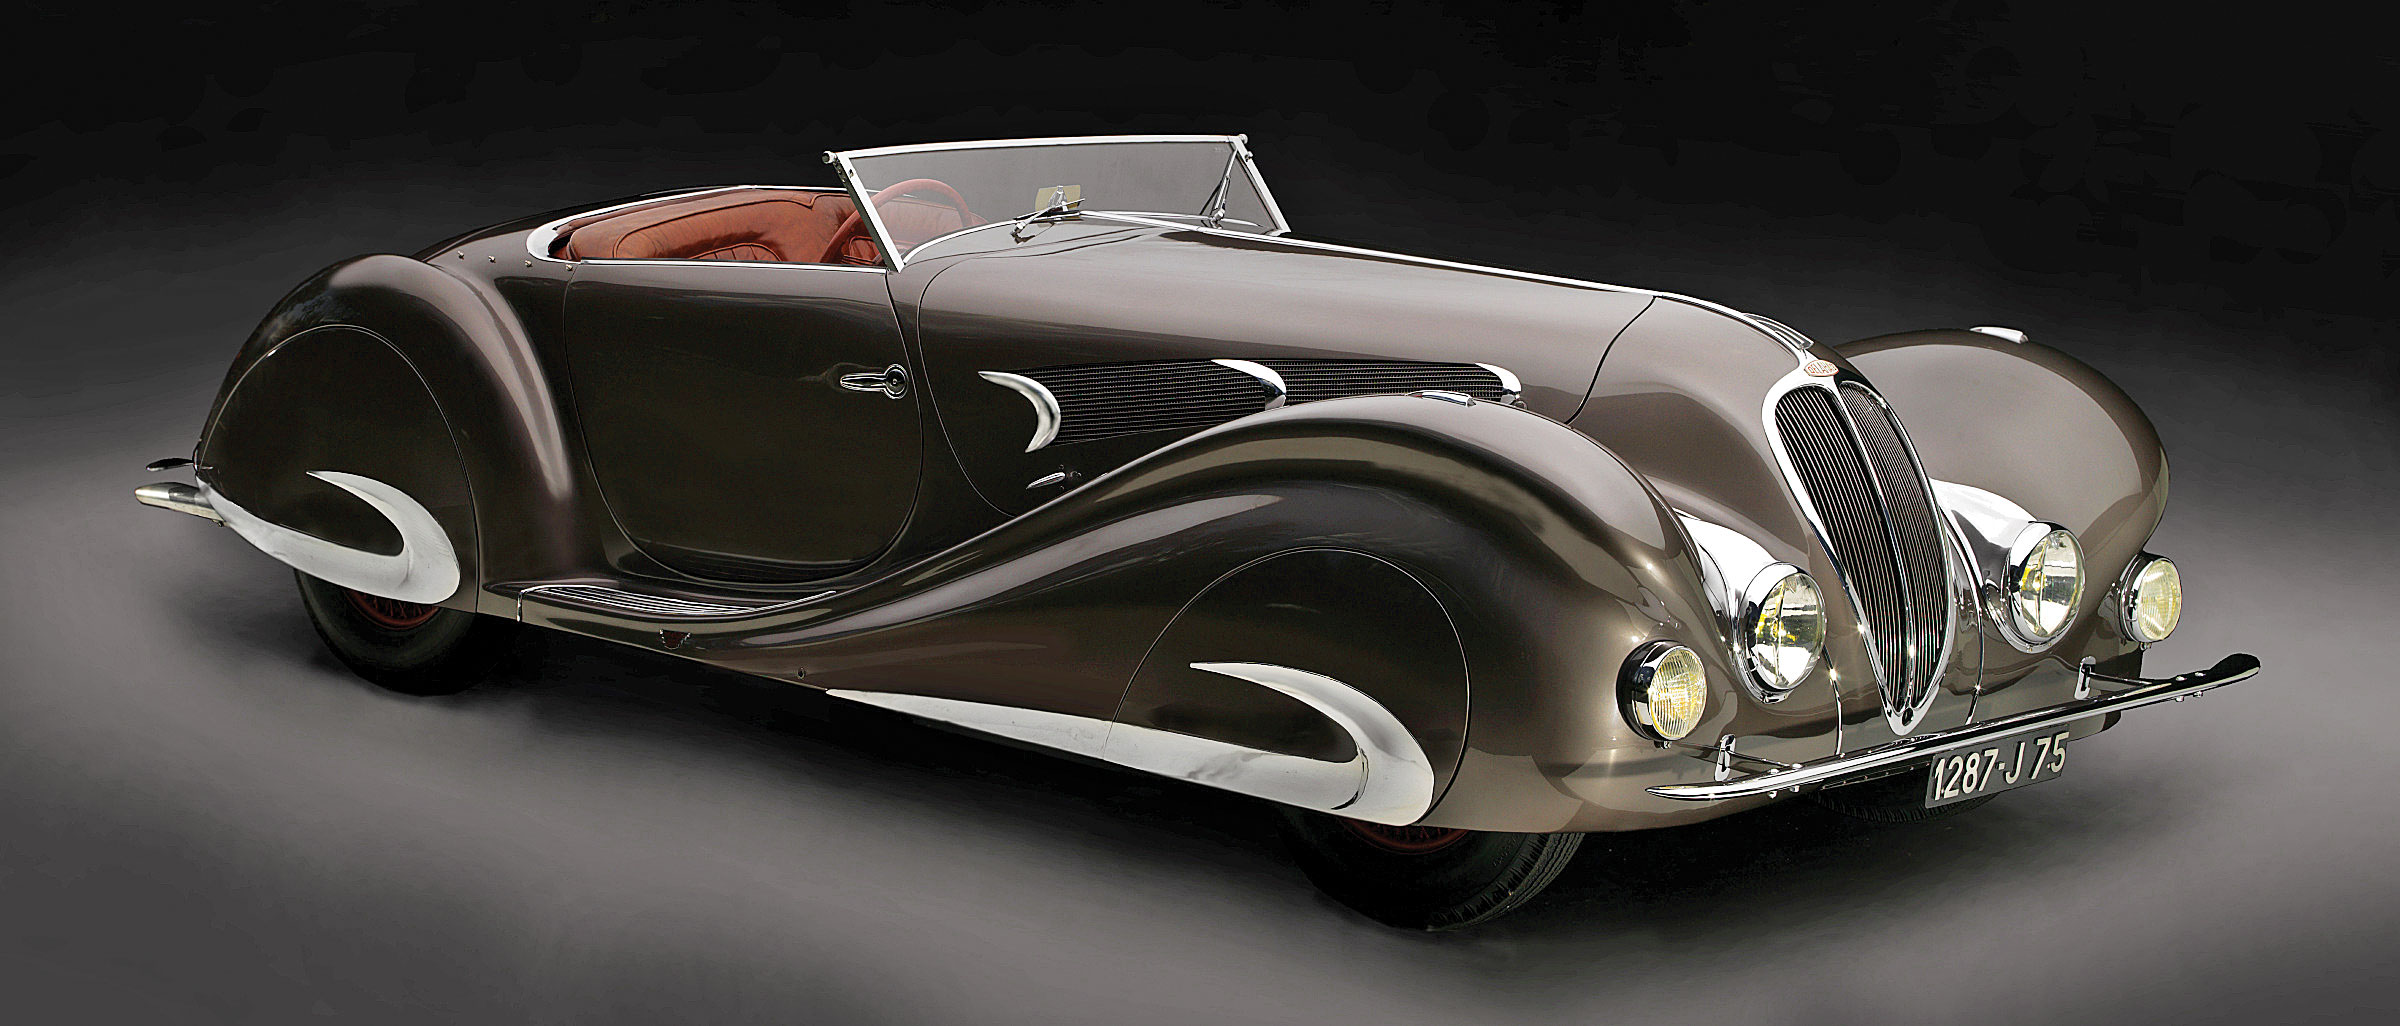 Bodywork designed by Figoni & Falaschi, Delahaye, 135MS Roadster, 1937